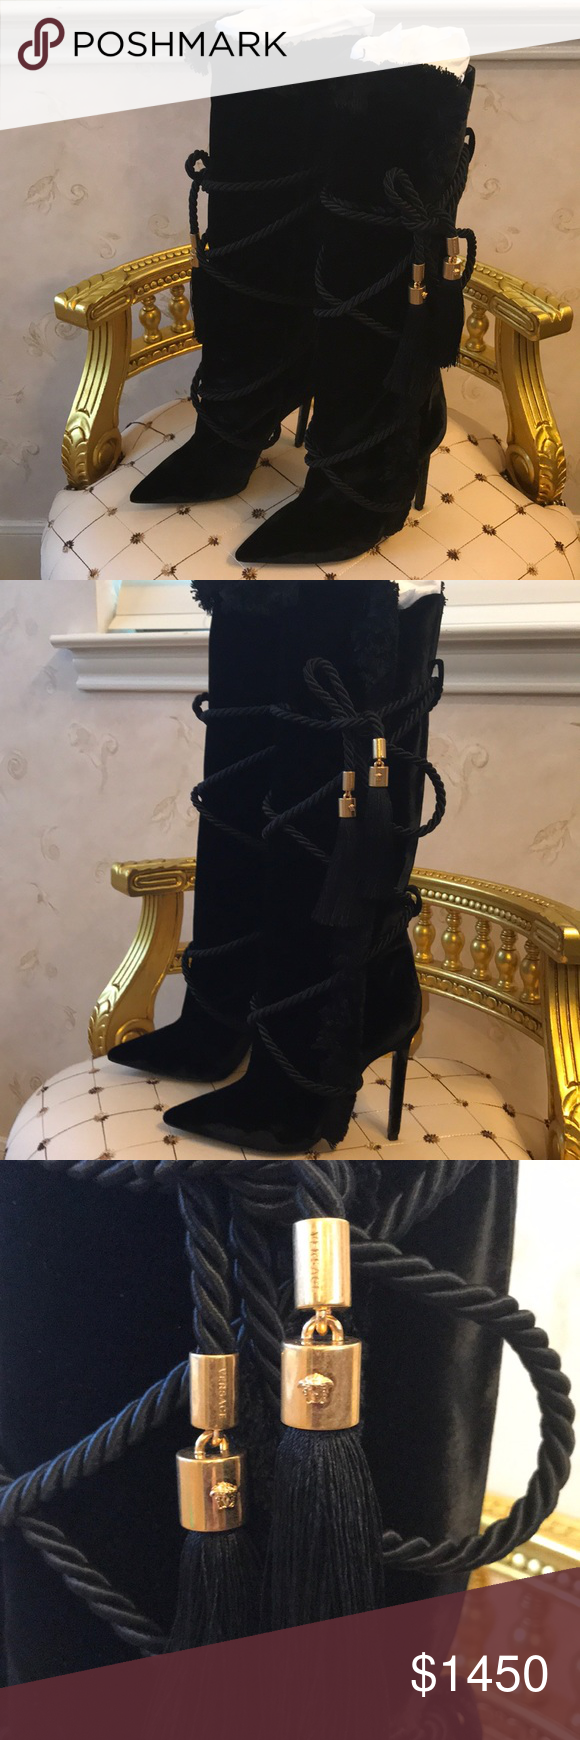 53a30aa46ca Versace Pillow Talk Black Velvet Boots NWT AUTHENTIC Italian decadence at  it finest